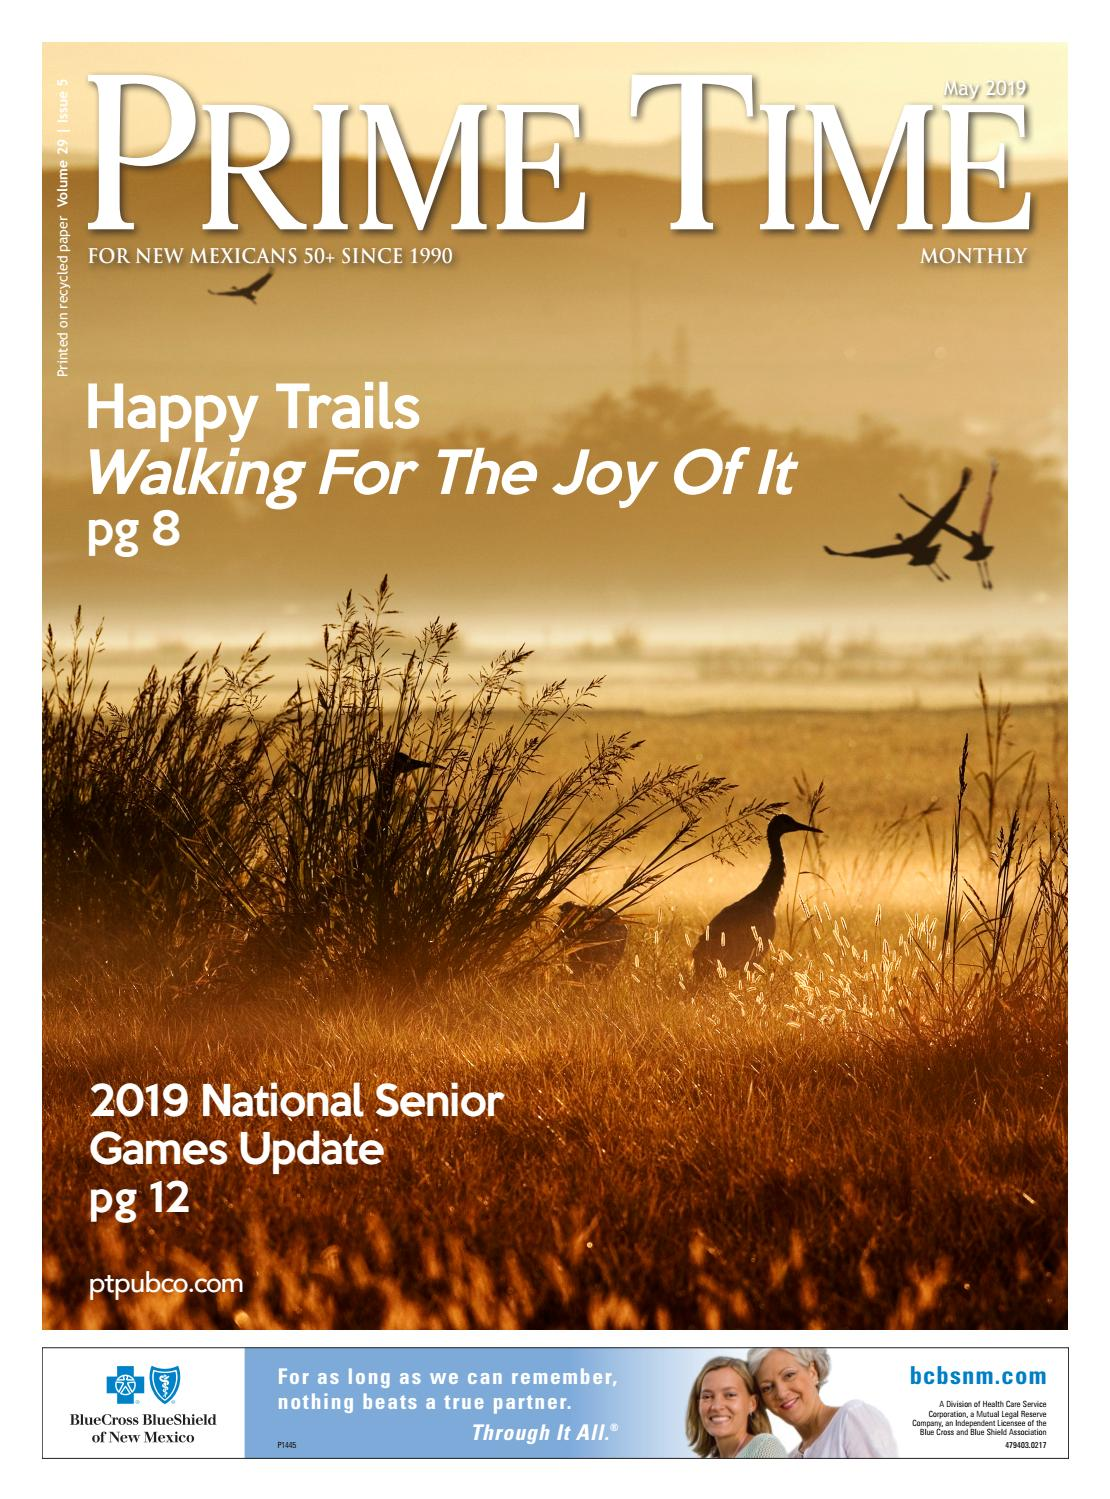 May Prime Time 2019 by Dave Rivord - issuu